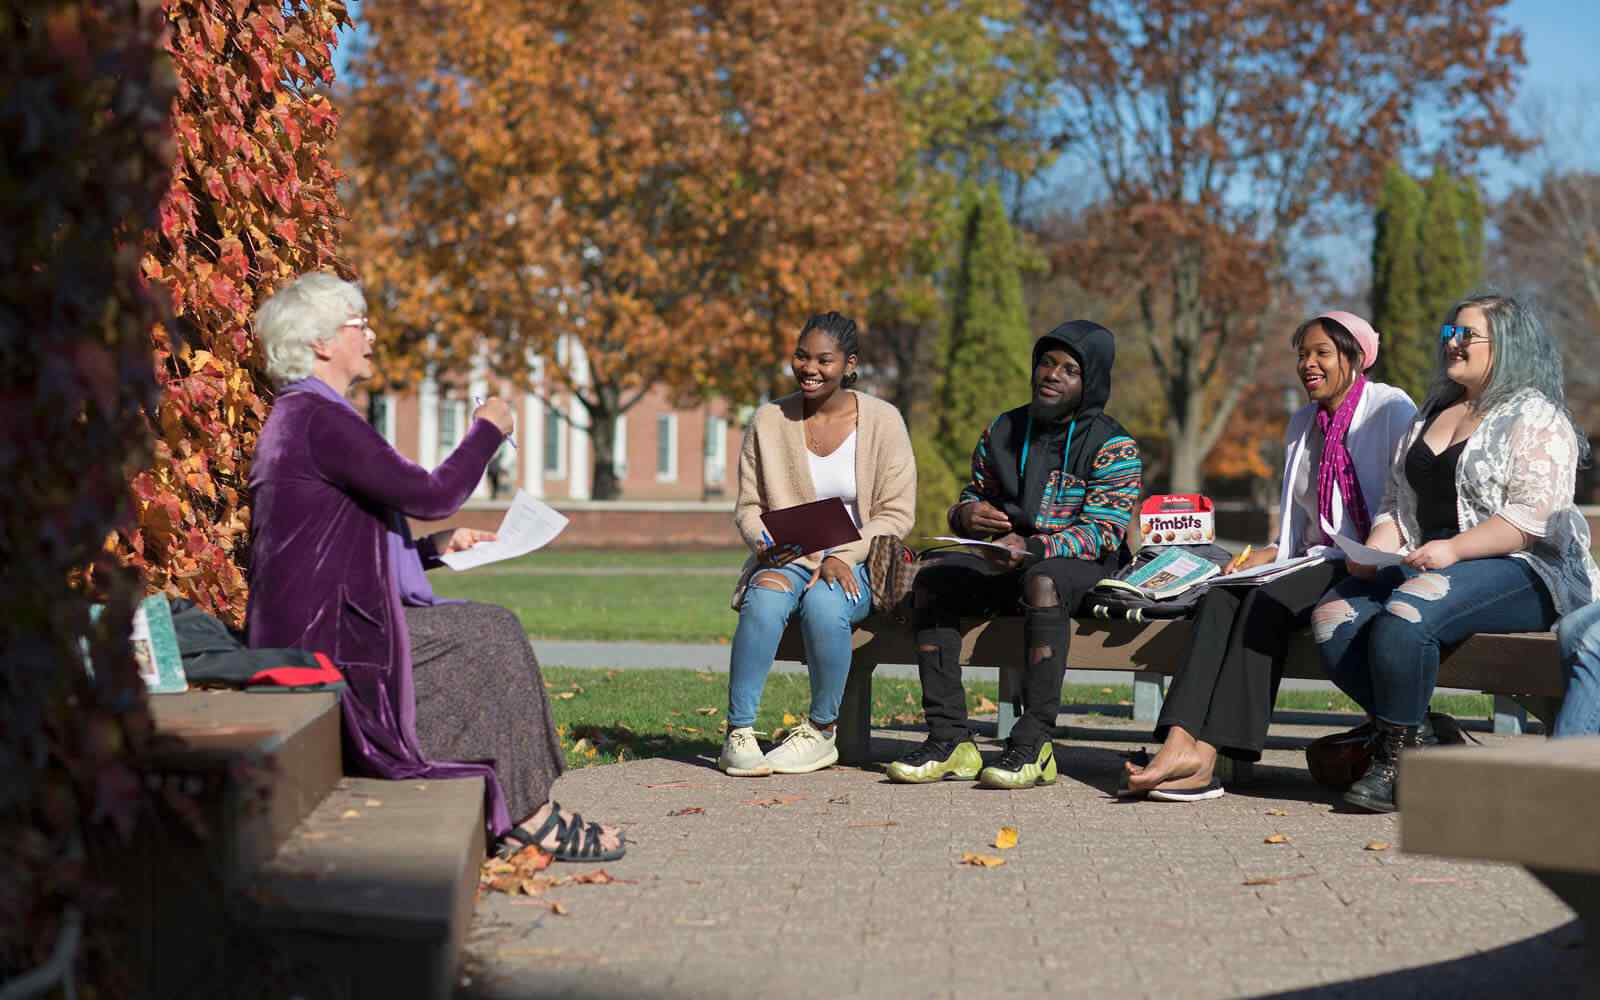 Lecturer and students sat on benches in conversation at State University of New York